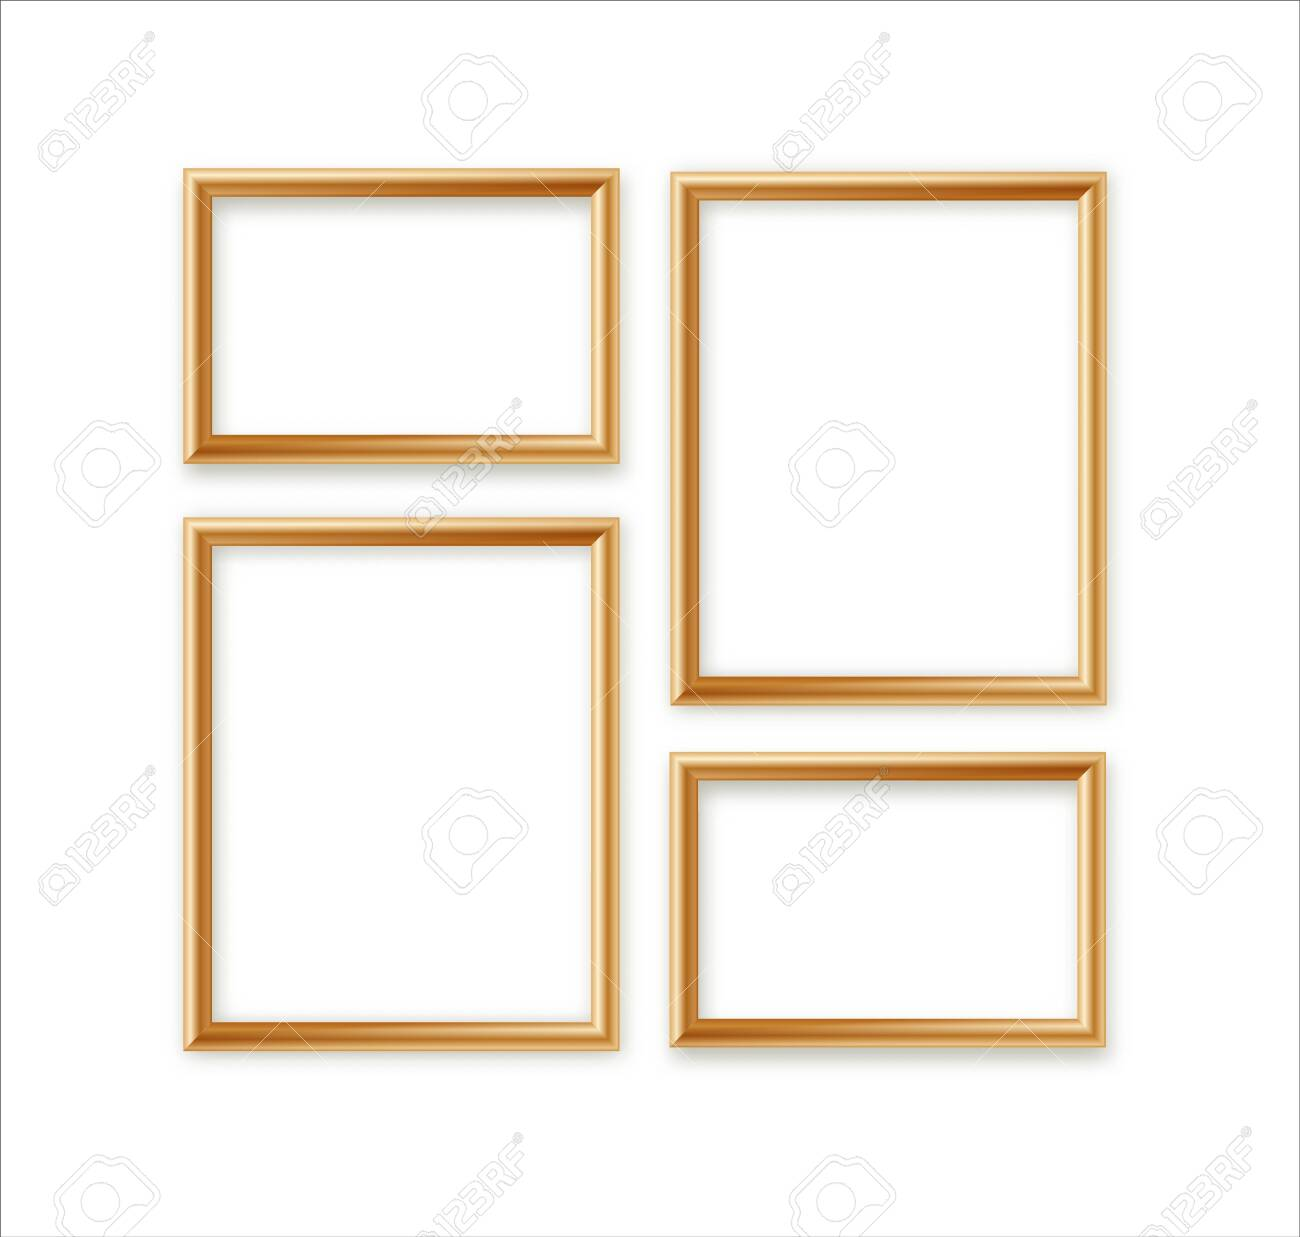 Vector Blank Picture Frame Template Composition Set Isolated on Wall Background - 135823274